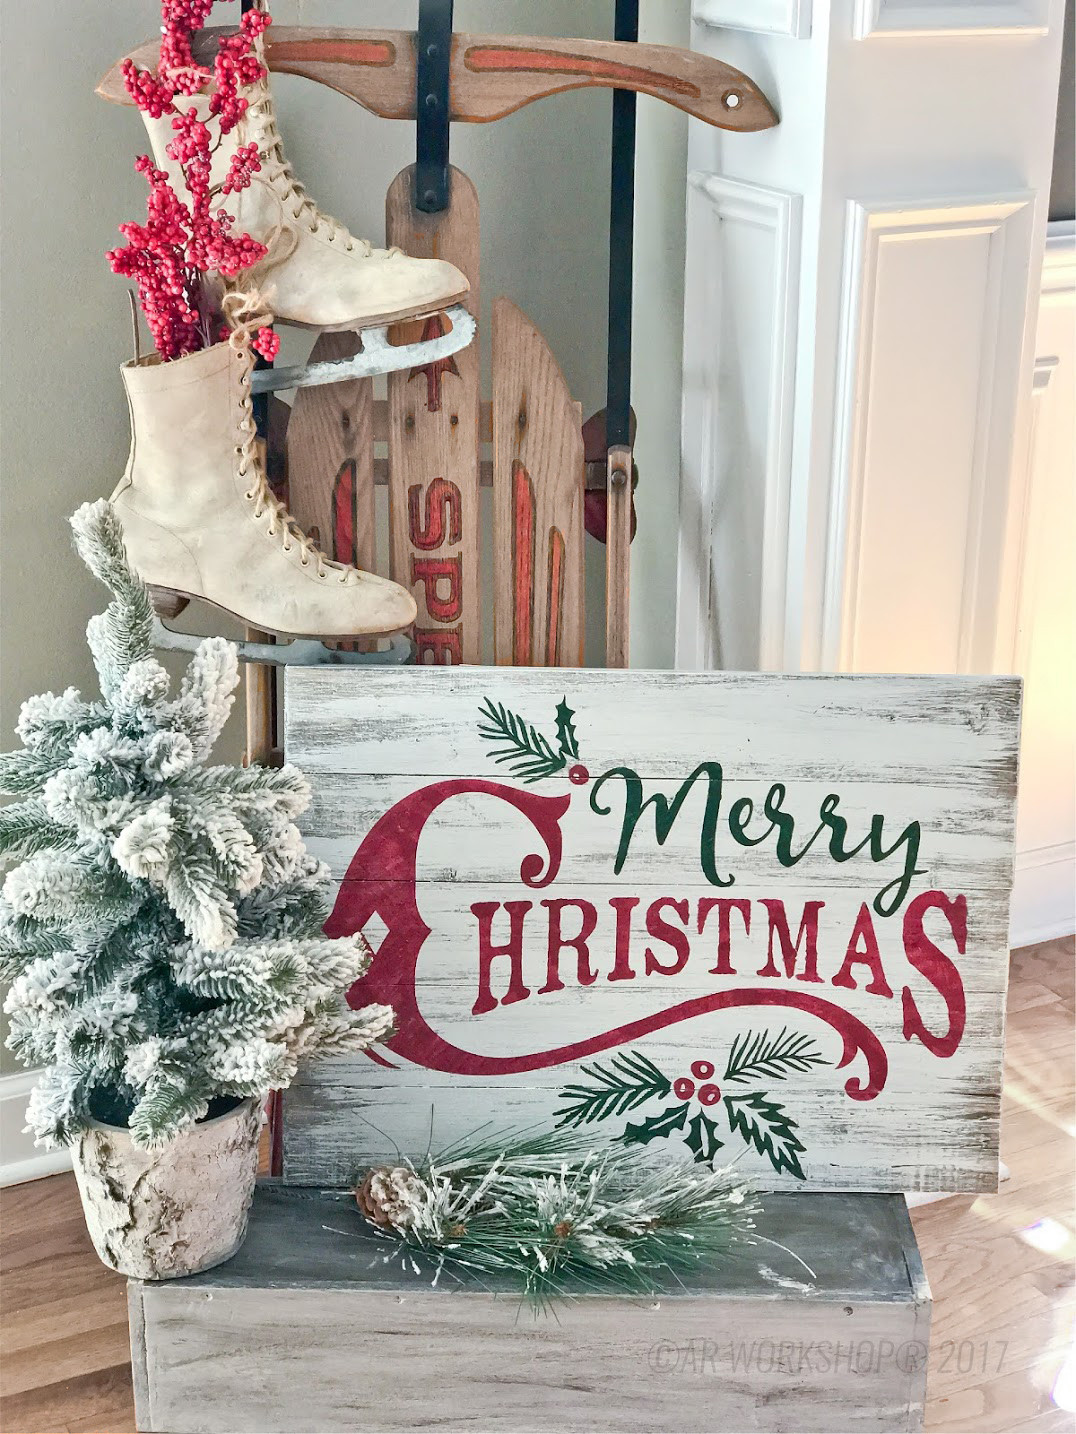 DIY Wooden Christmas Signs  Plank Wood Holiday – AR Workshop Gallery